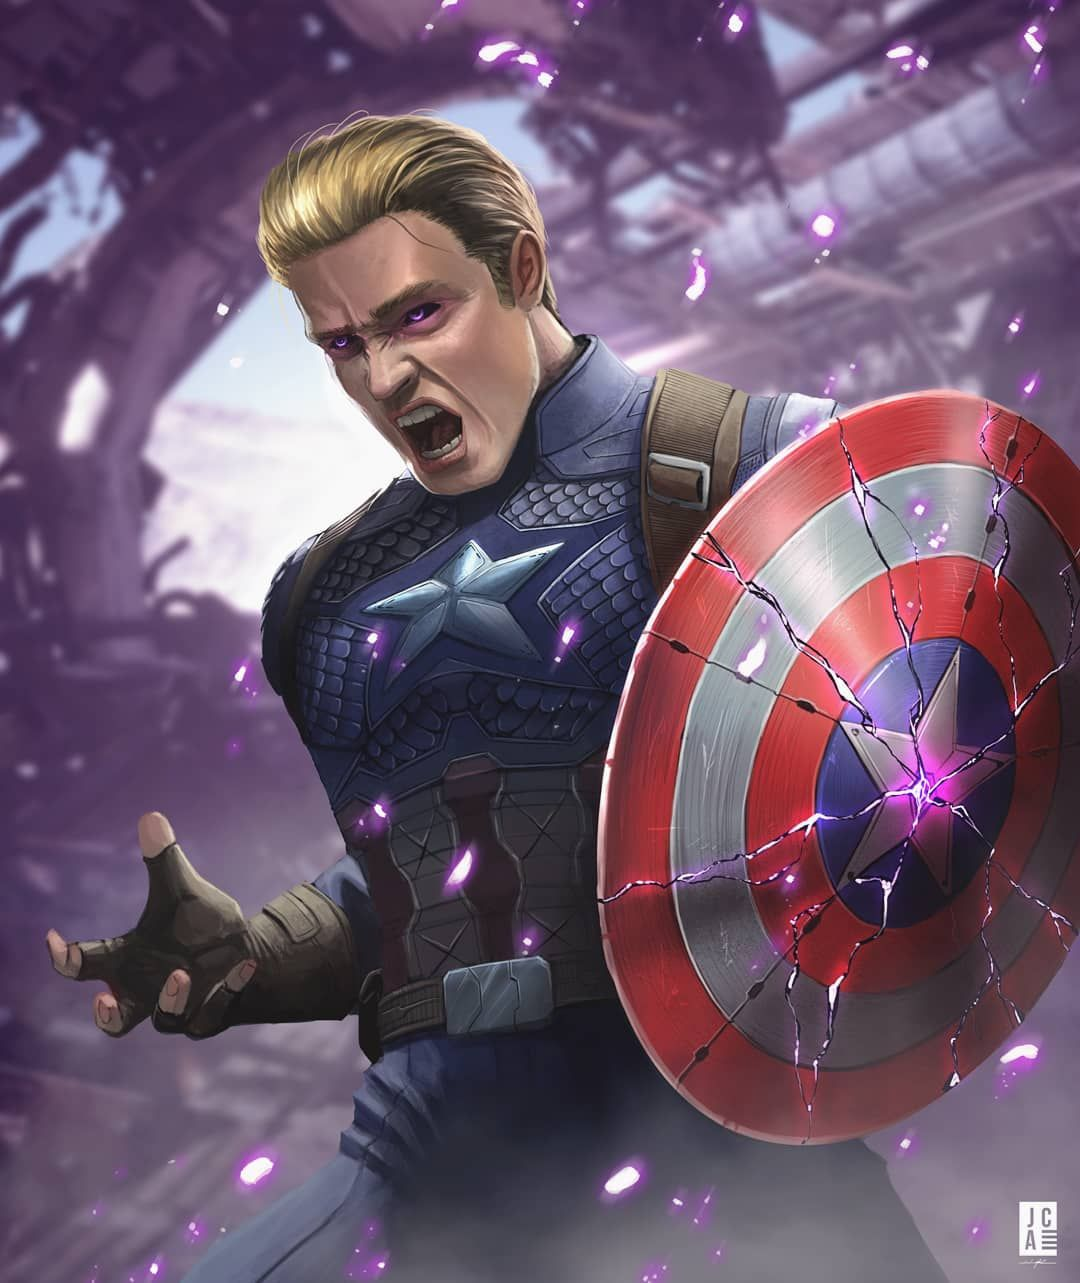 new captain america avengers 4 concept art. i think it would be the